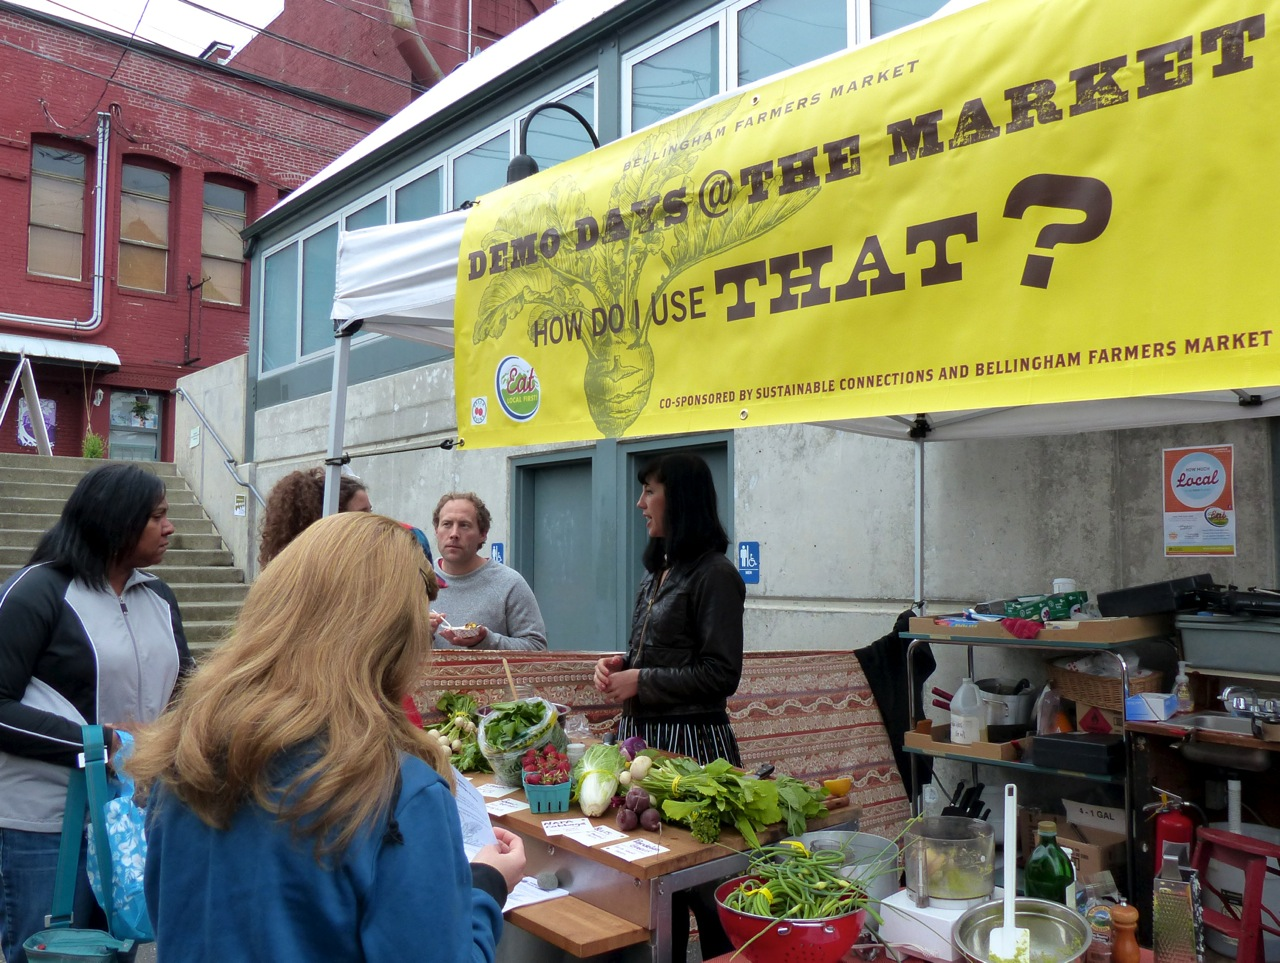 Demo Days at the Market